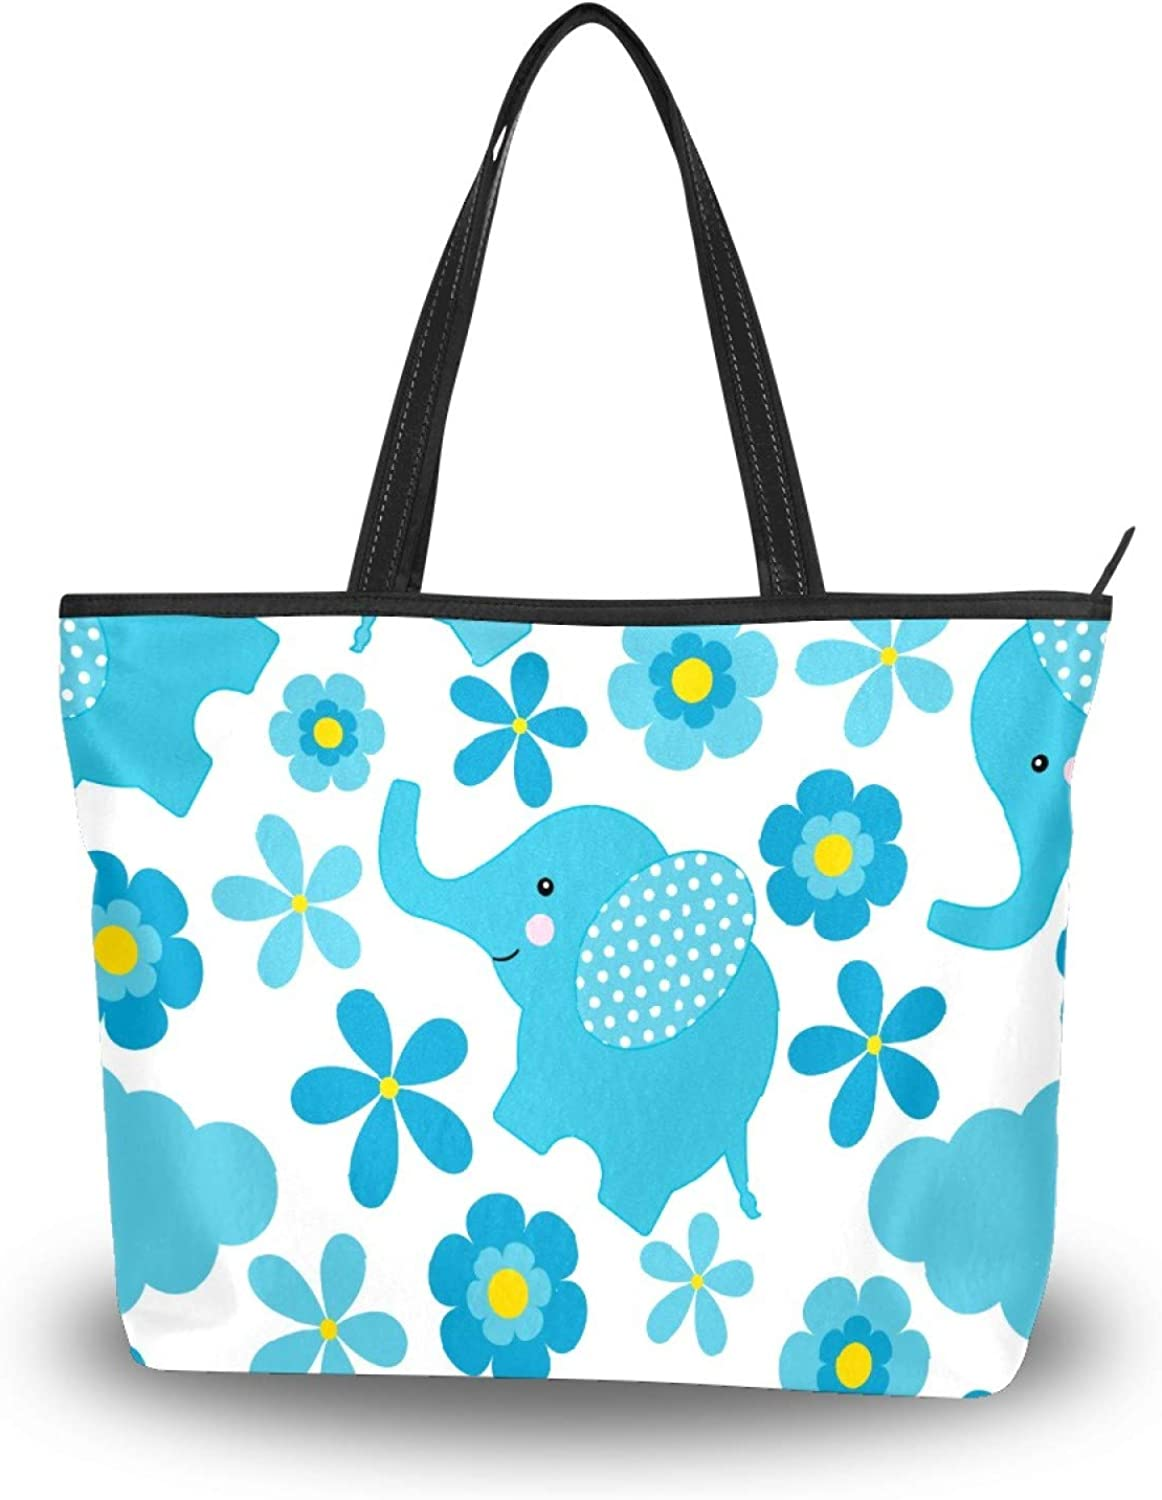 50 Cent Elephant Print Tote Washington Be super welcome Mall Women Polyester Sho Bag Lightweight